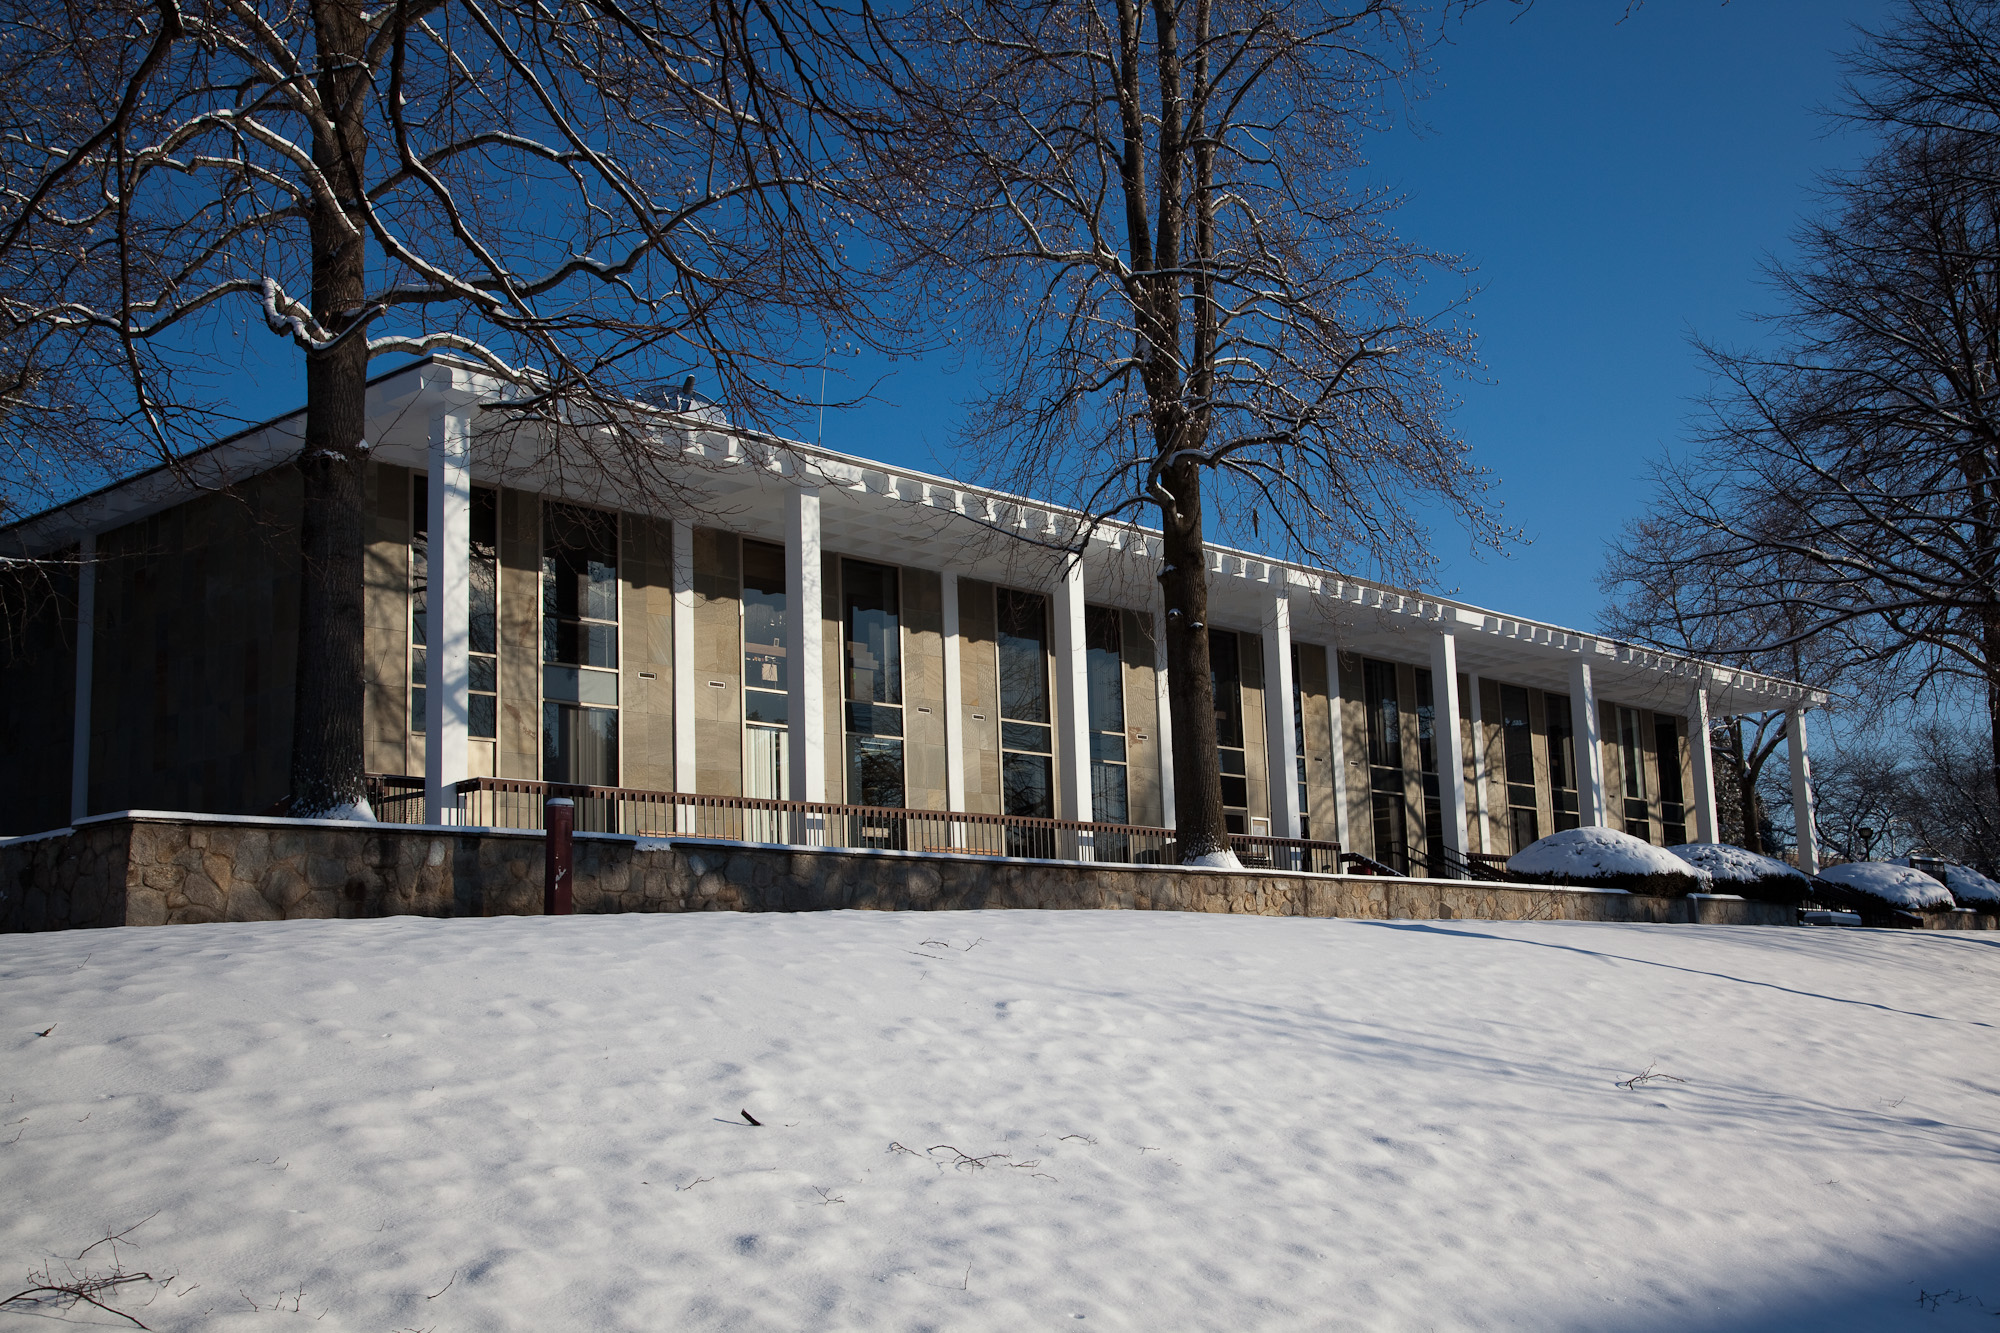 Adams Library in Winter